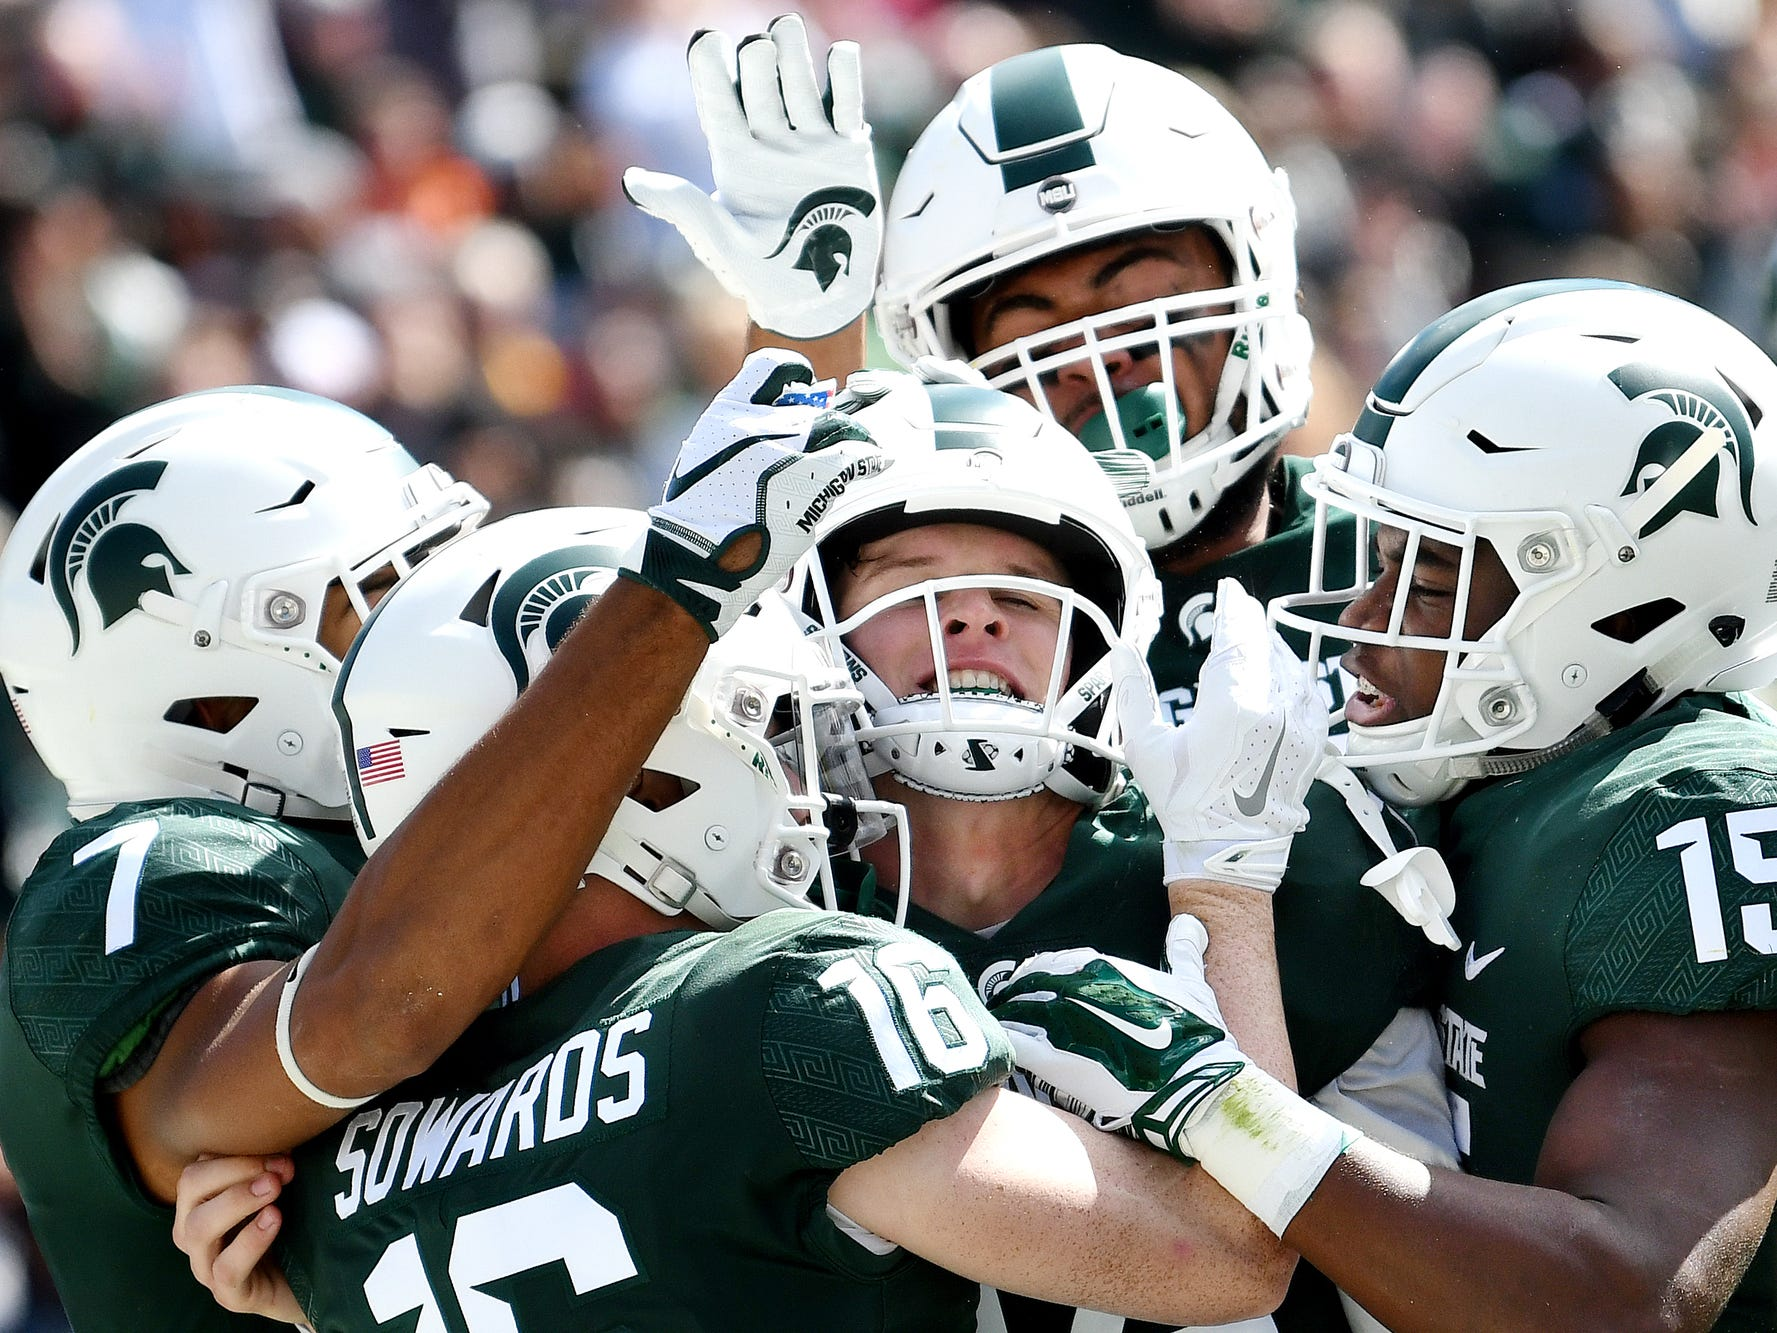 Michigan State's Central Michigan's during the second quarter on Saturday, Sept. 29, 2018, at Spartan Stadium in East Lansing.